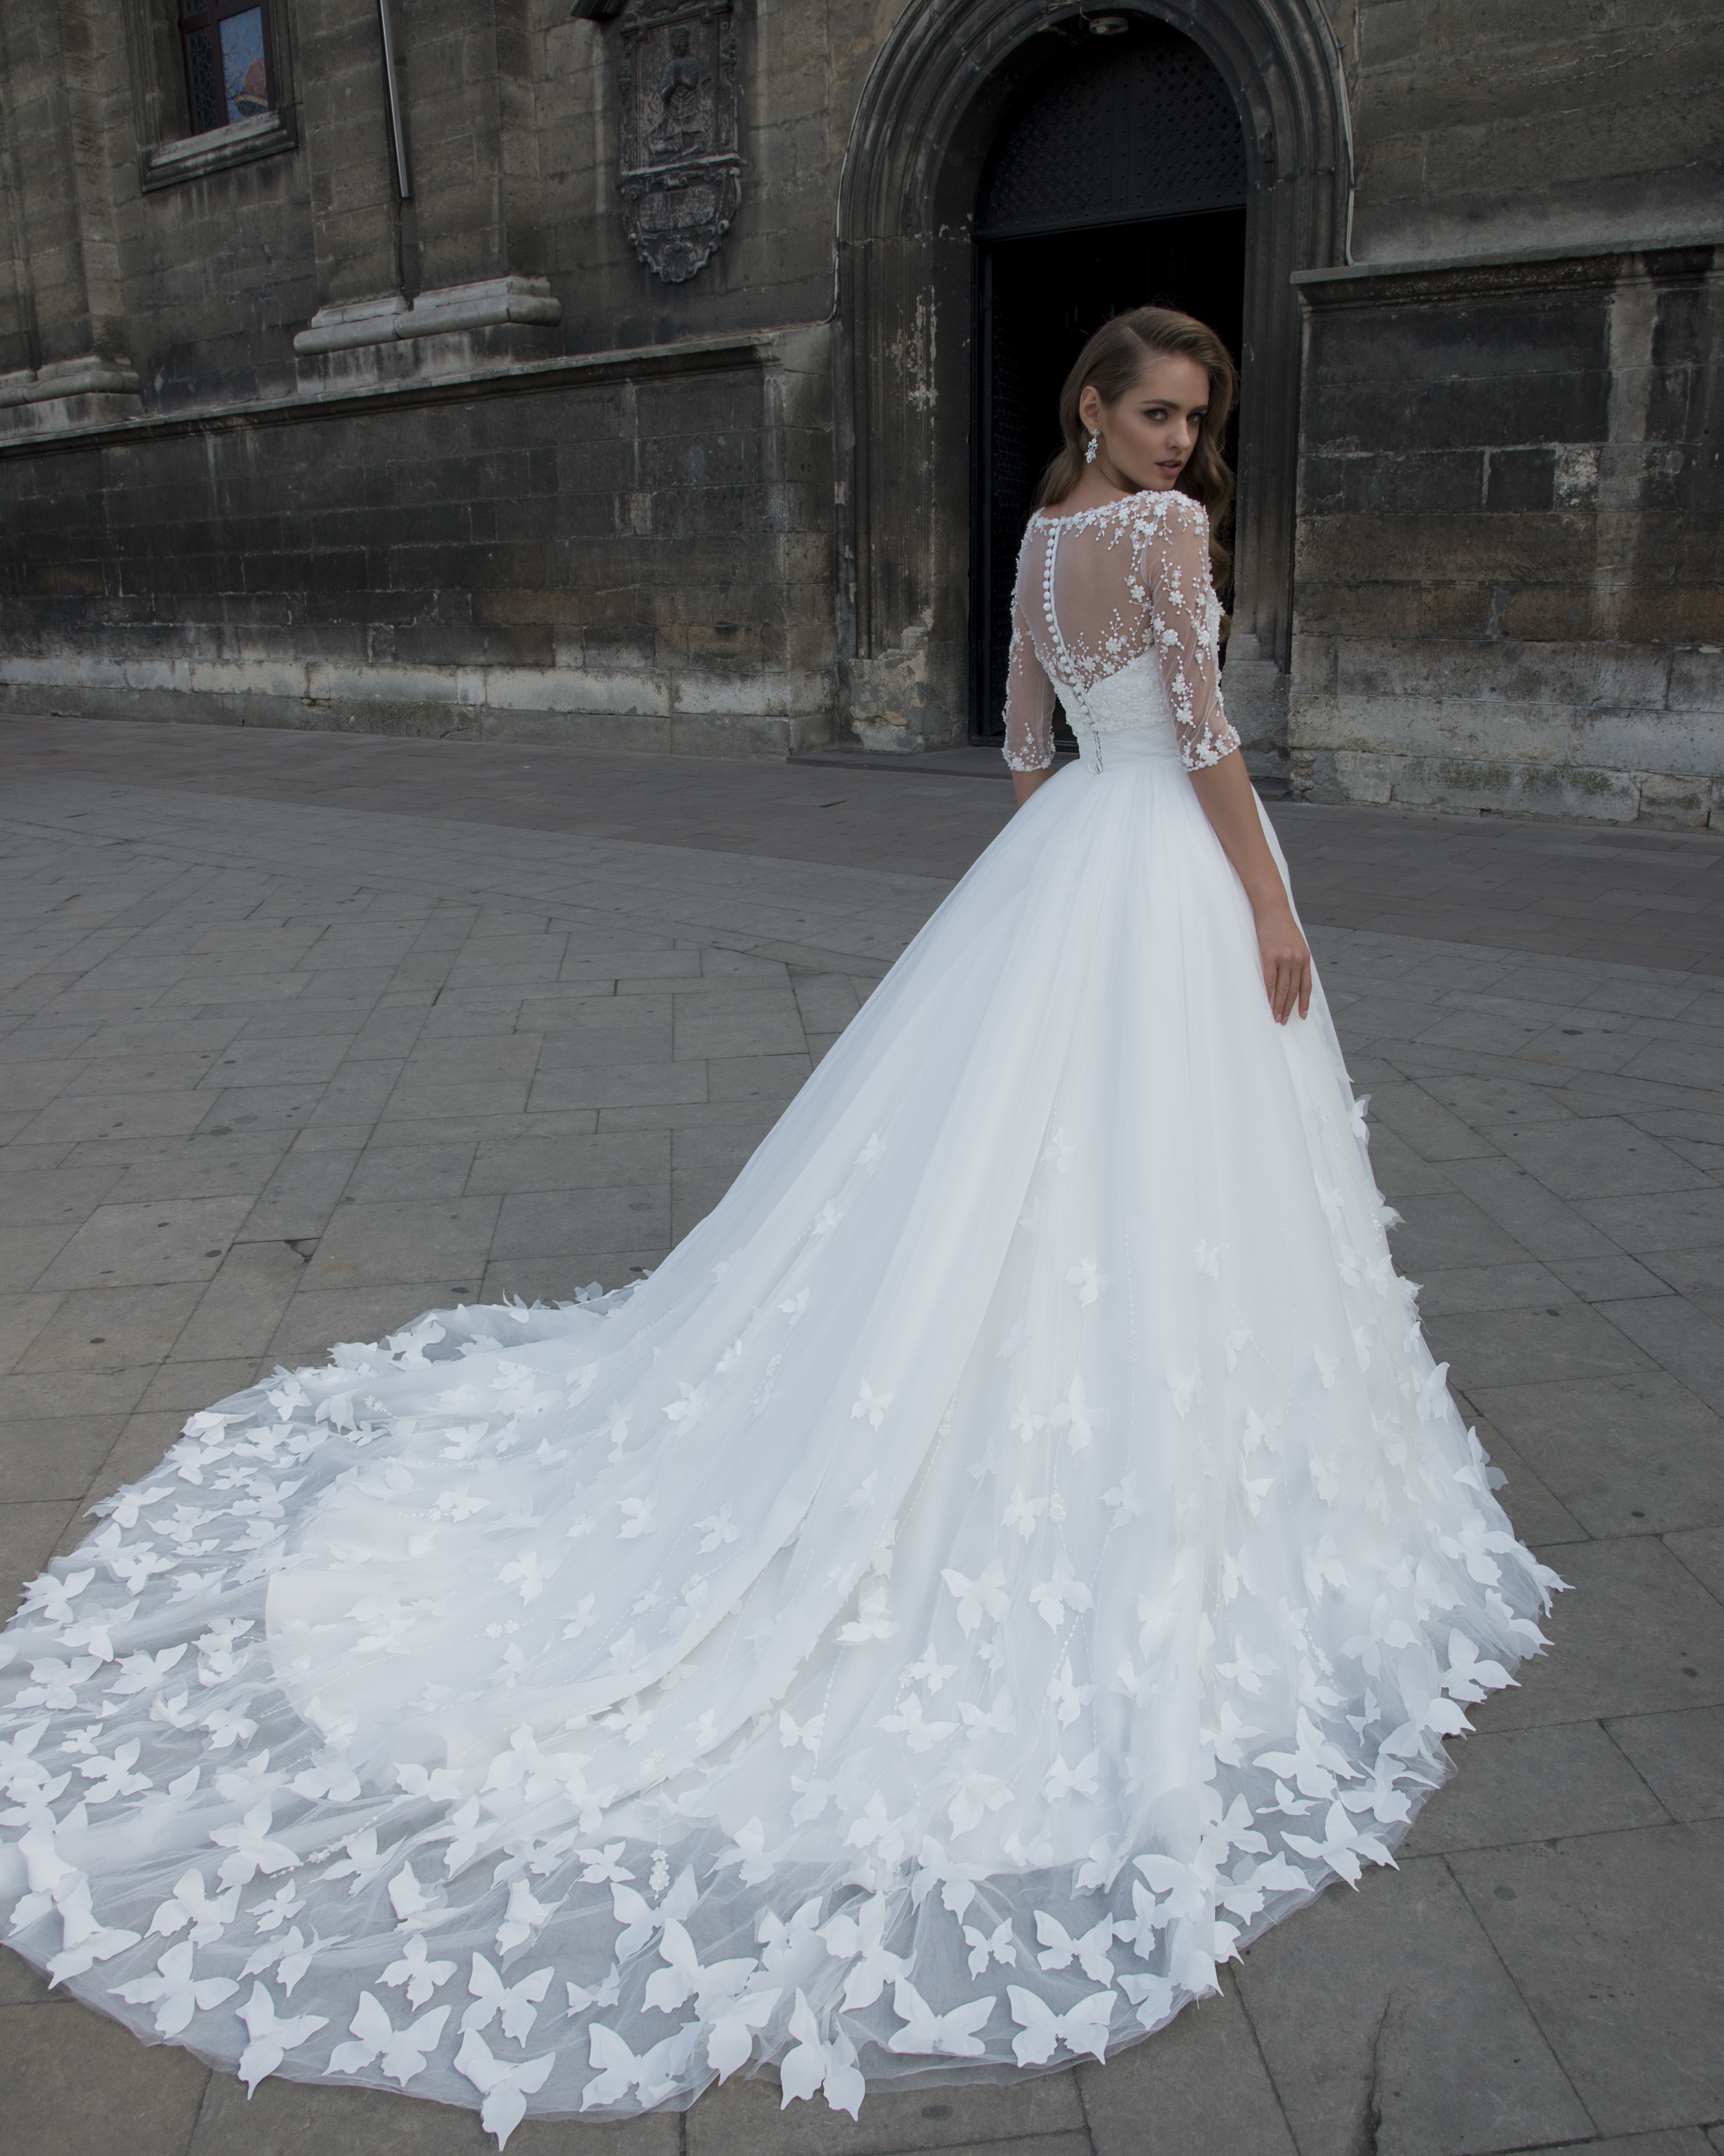 LITE by Dominiss - Natalia Exclusif - Wedding dresses montreal, prom ...